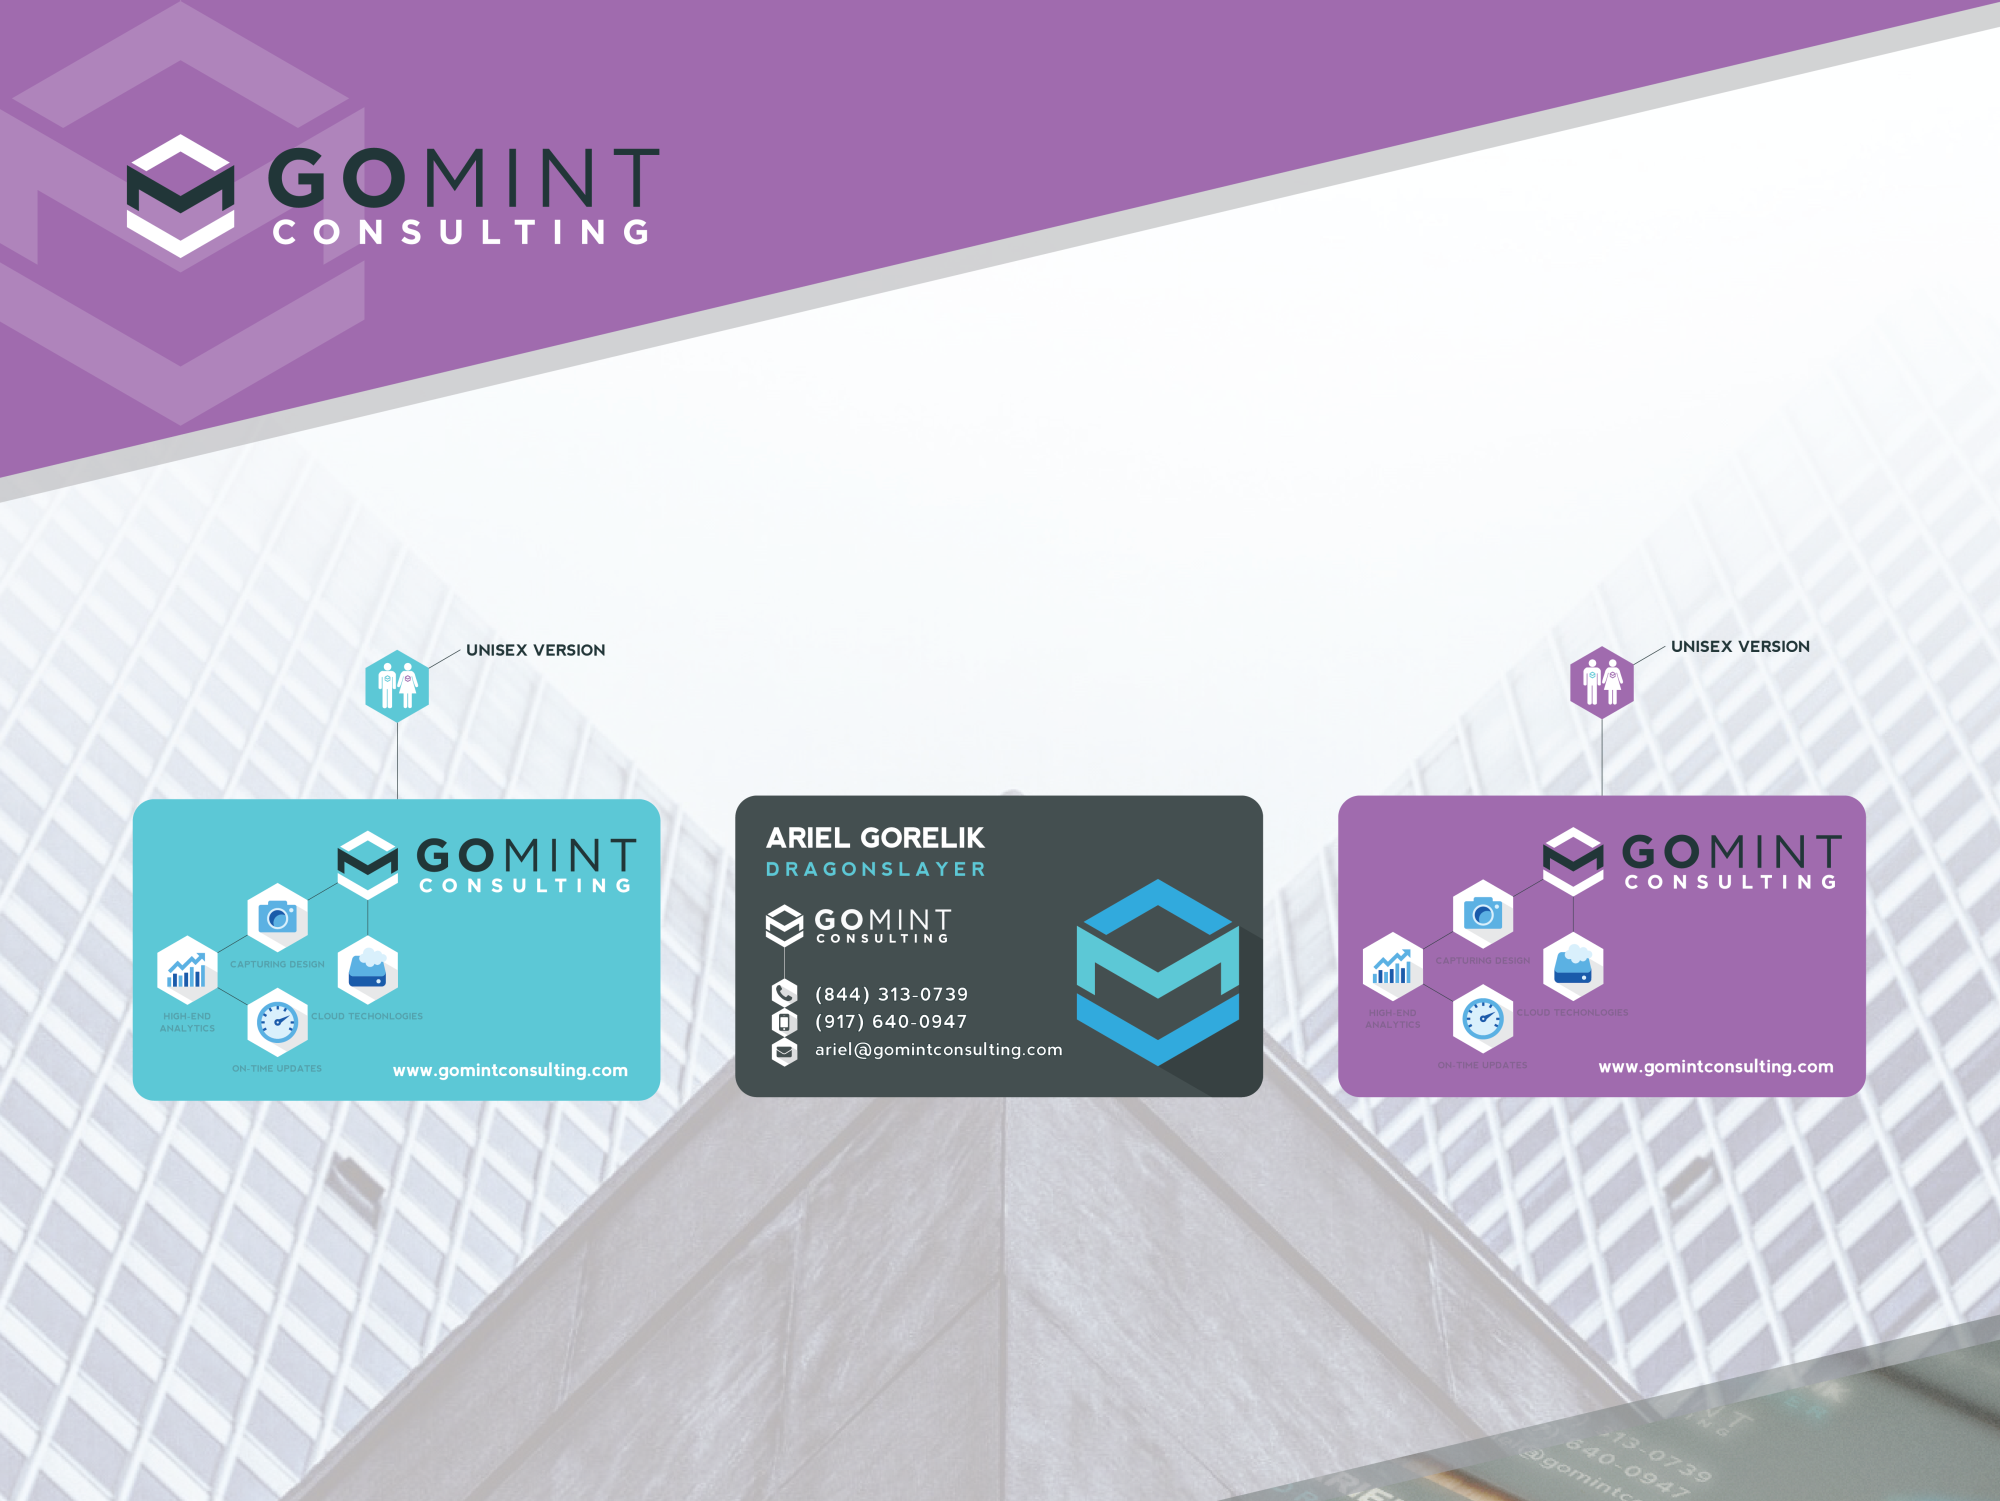 Go Mint Consulting business card design